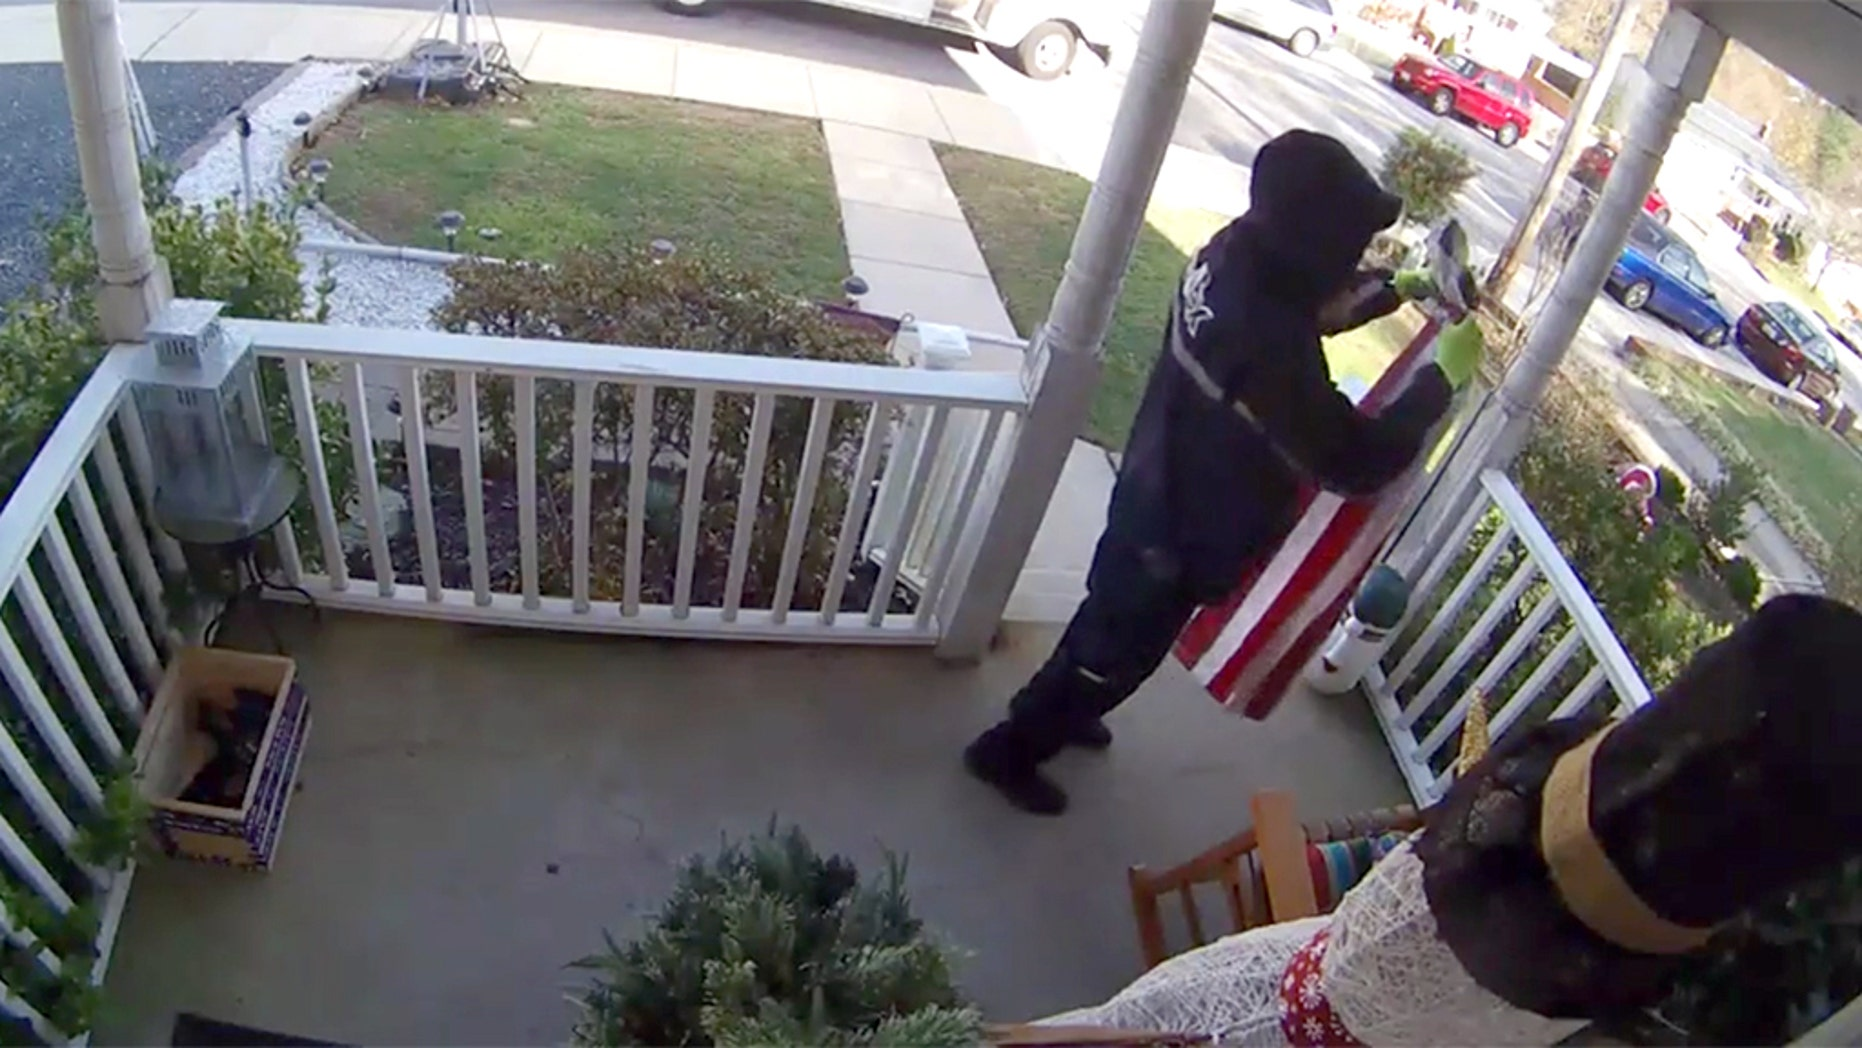 Caught on Camera: FedEx delivery man folds fallen flag